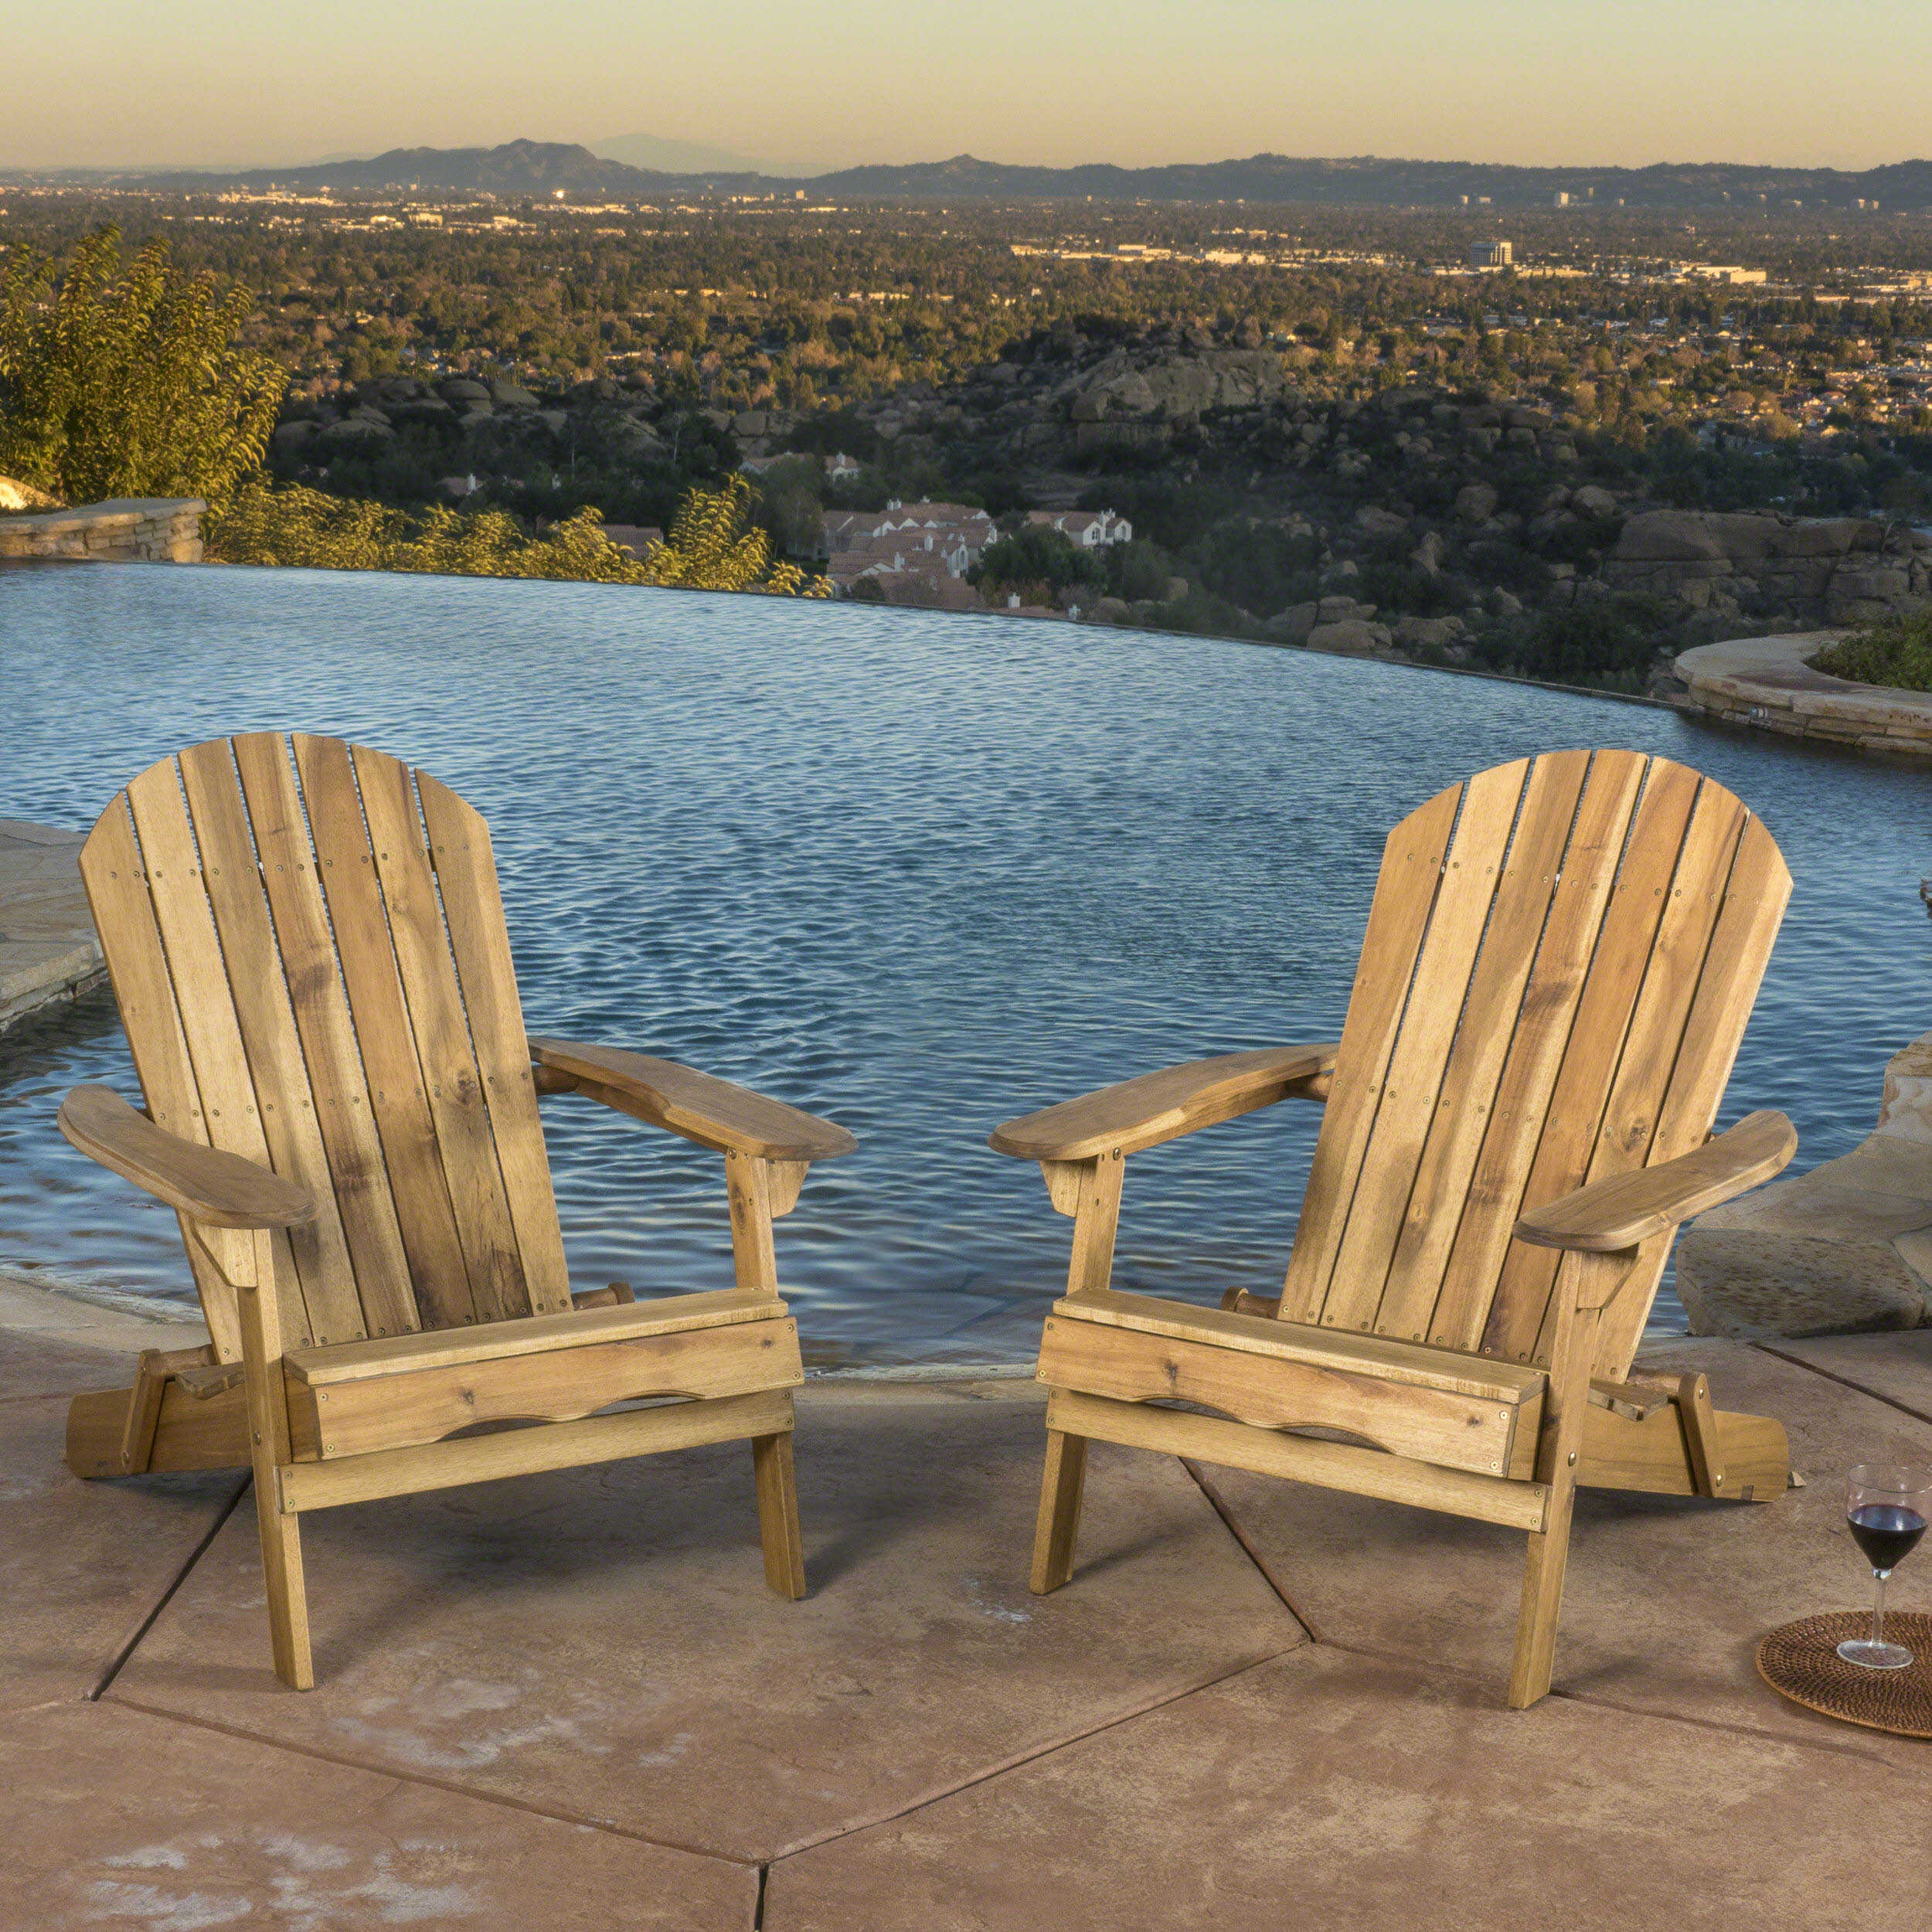 Morgan Folding Wood Adirondack Chair, Set of 2, Natural Stain